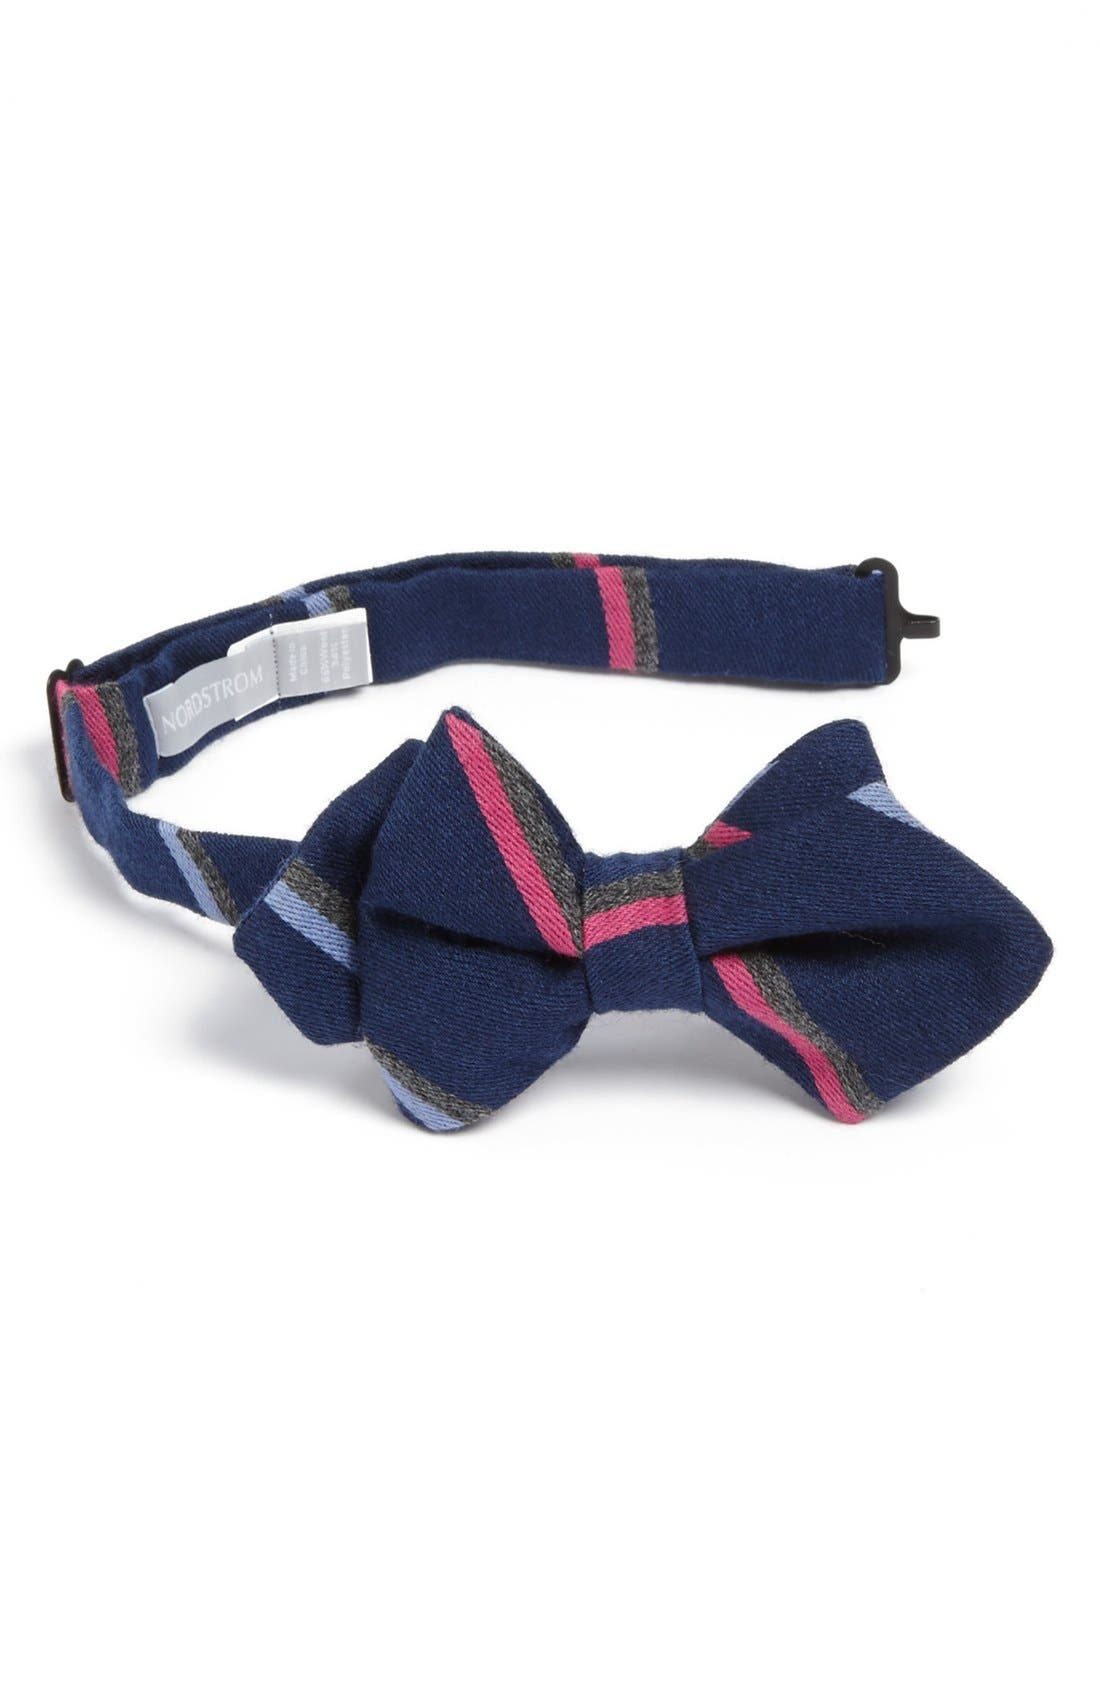 Main Image - Nordstrom Wool Blend Bow Tie (Boys)